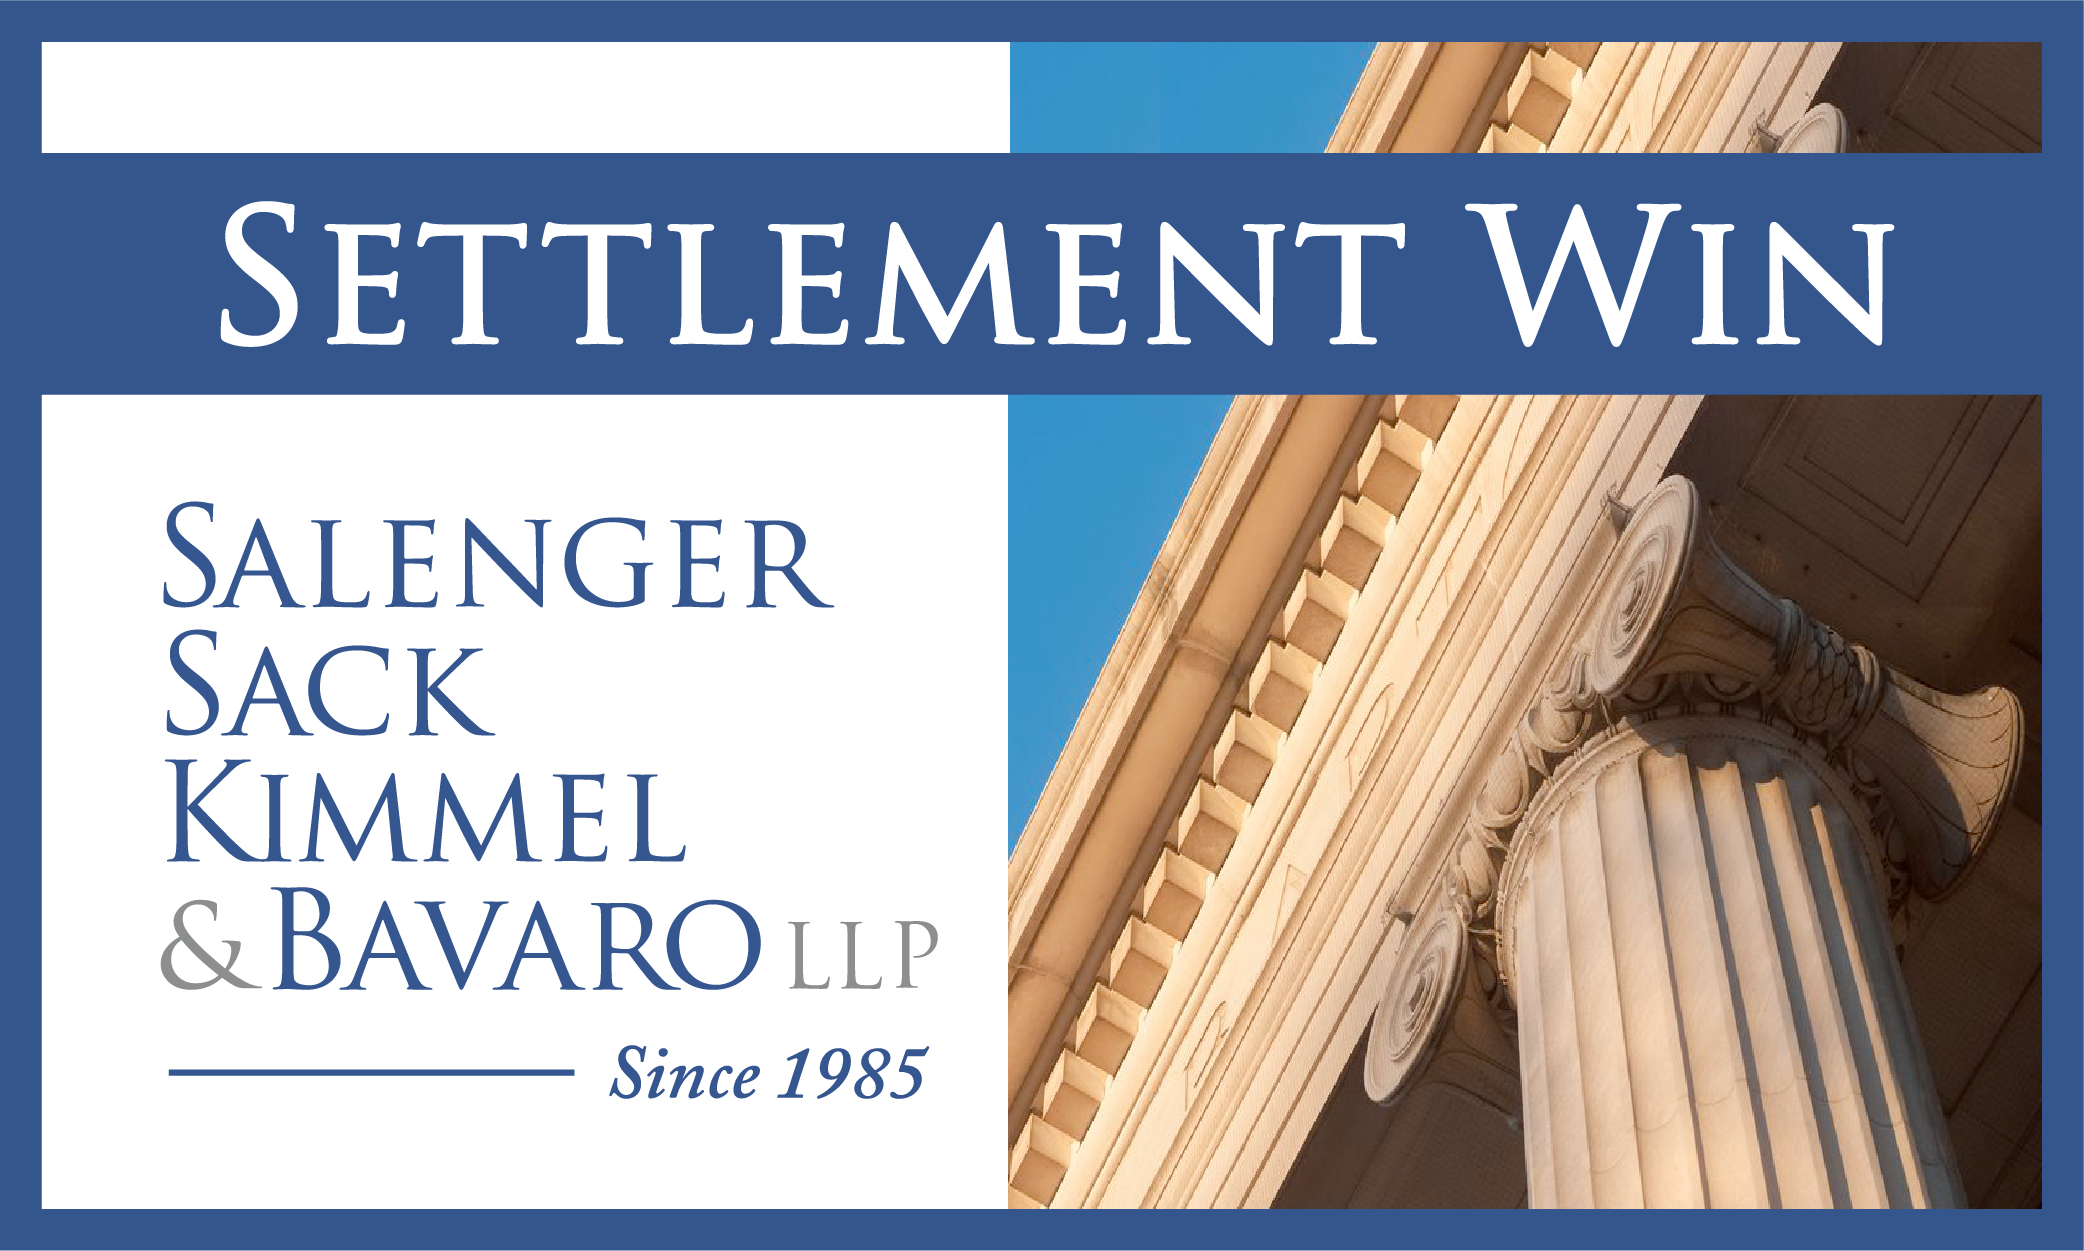 $3.5M SETTLEMENT & JUSTICE FOR ANOTHER CLIENT